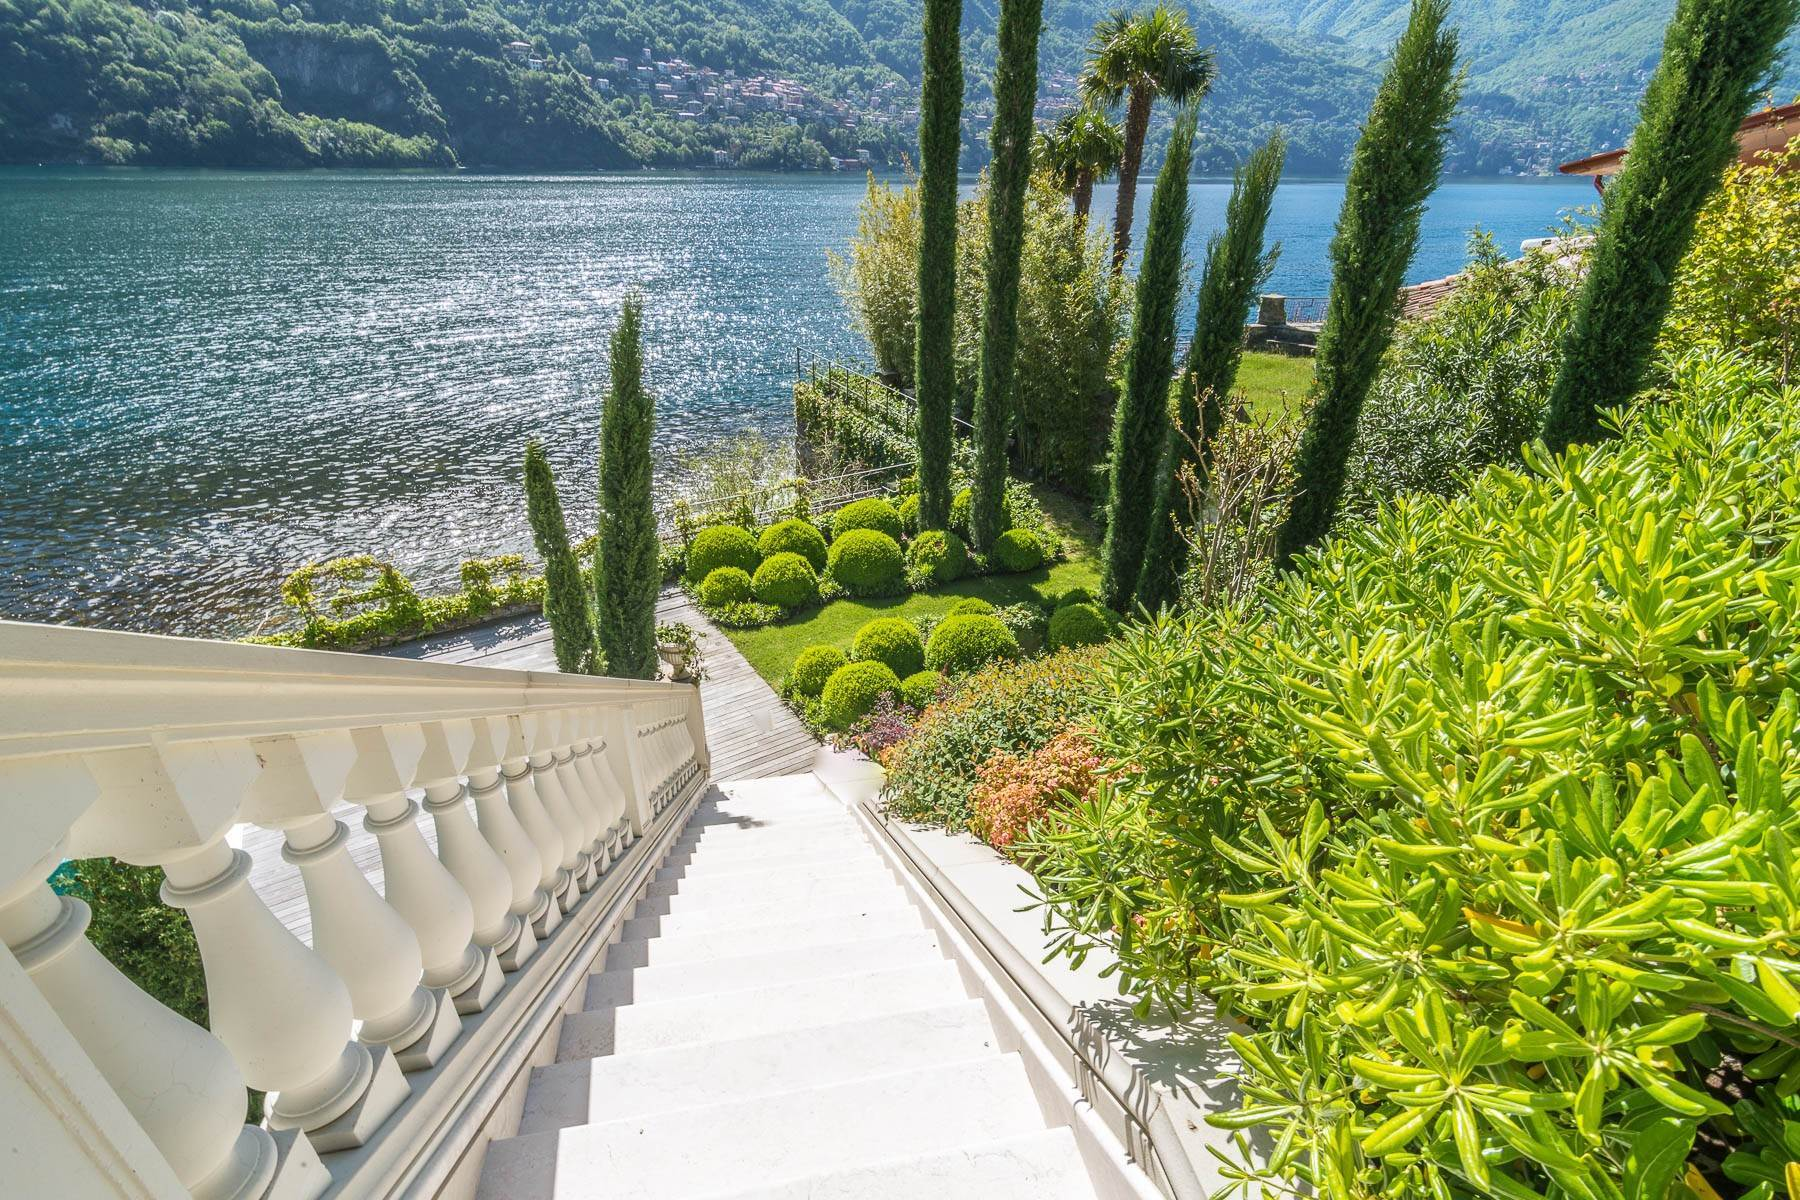 14. Other Residential Homes at Laglio, Como, Italy